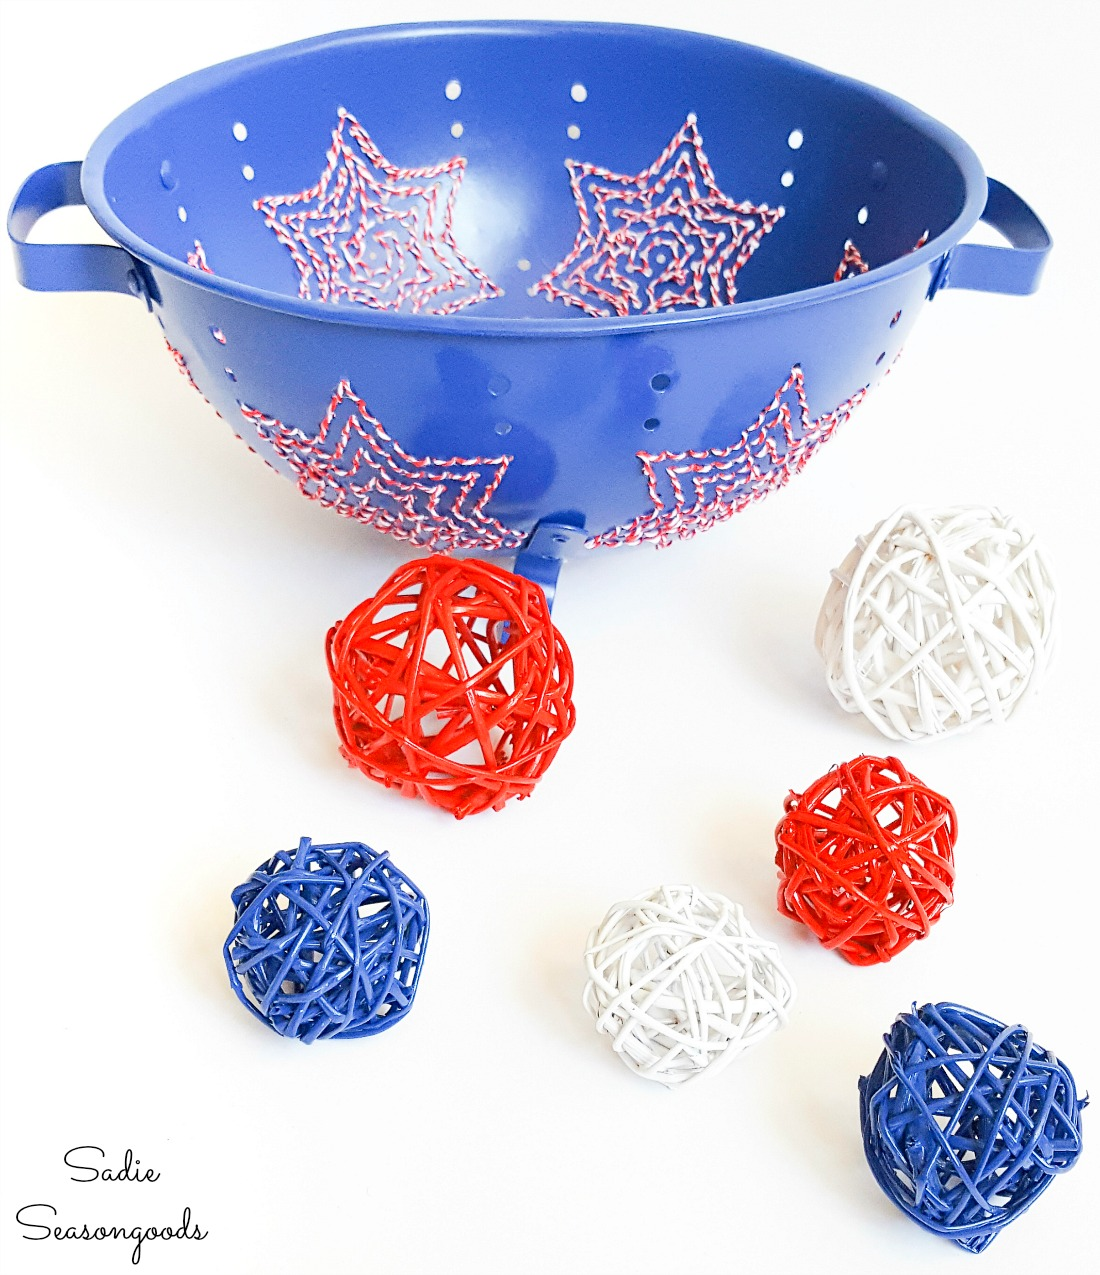 Metal strainer as patriotic home decor